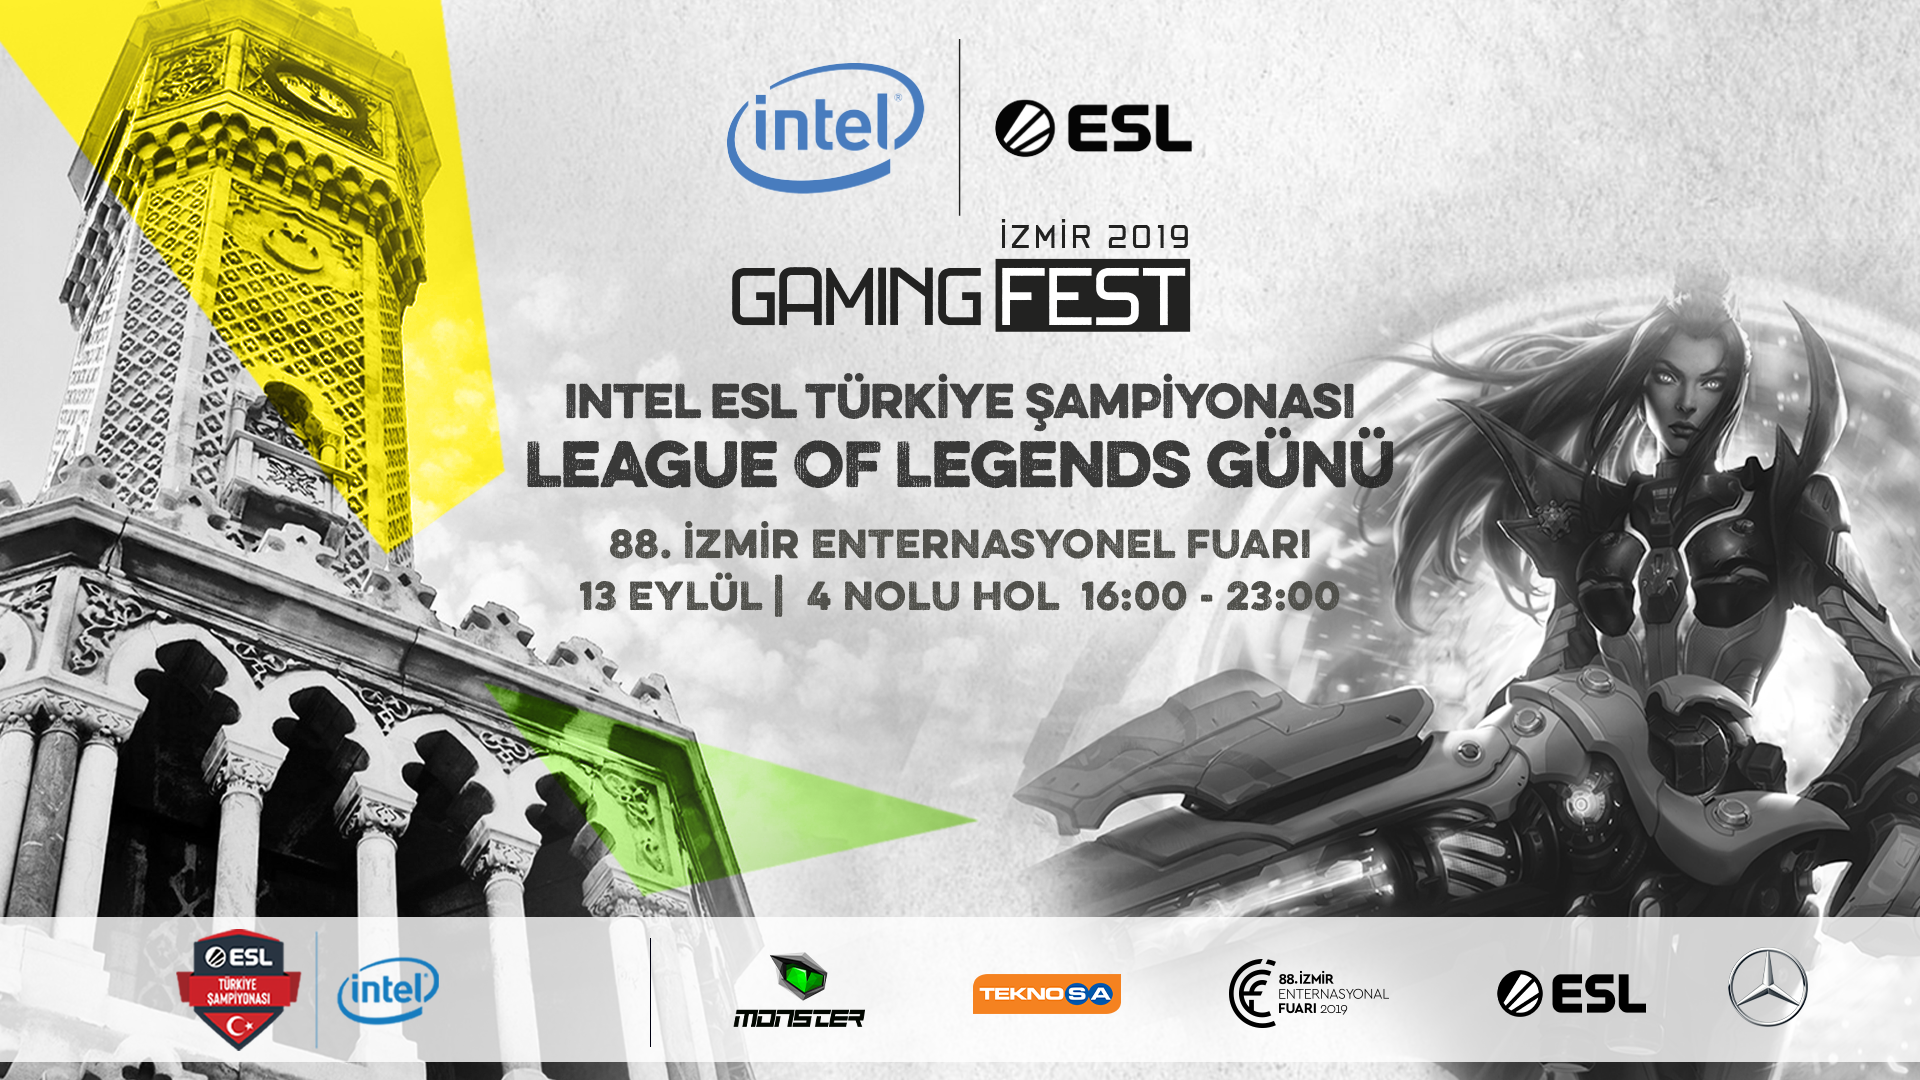 INTEL ESL GAMING FEST